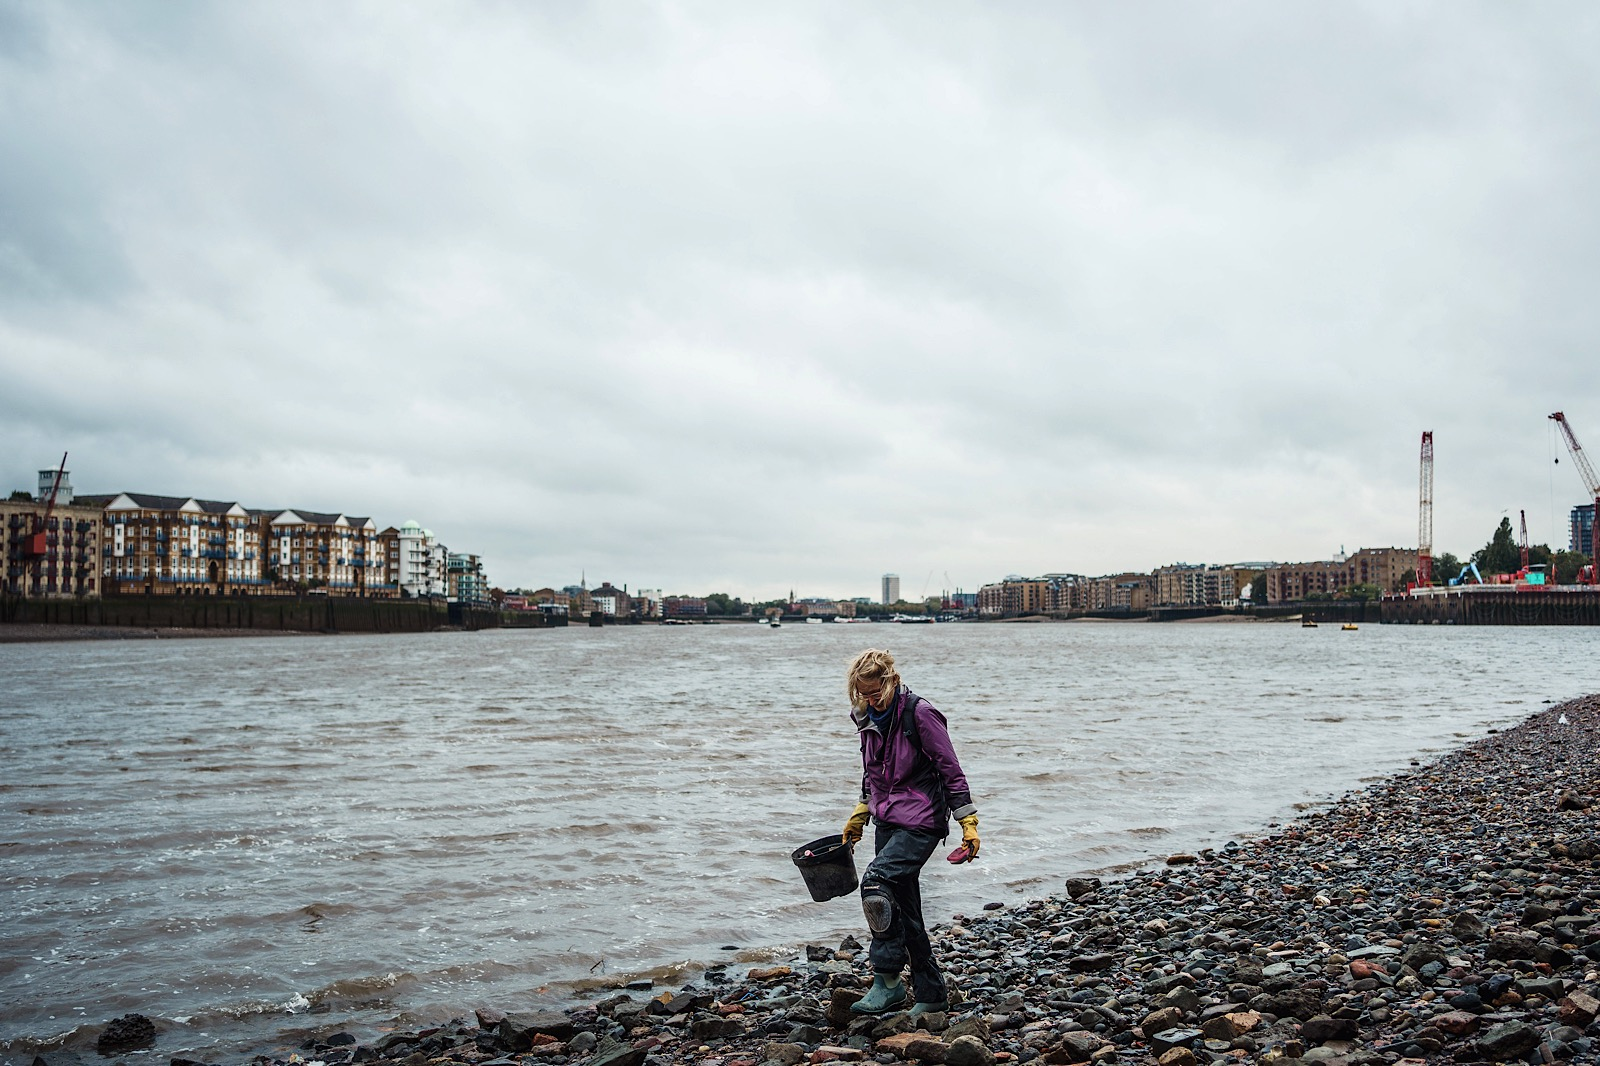 Mudlarker walking with bucket on banks of River Thames in London looking for treasure